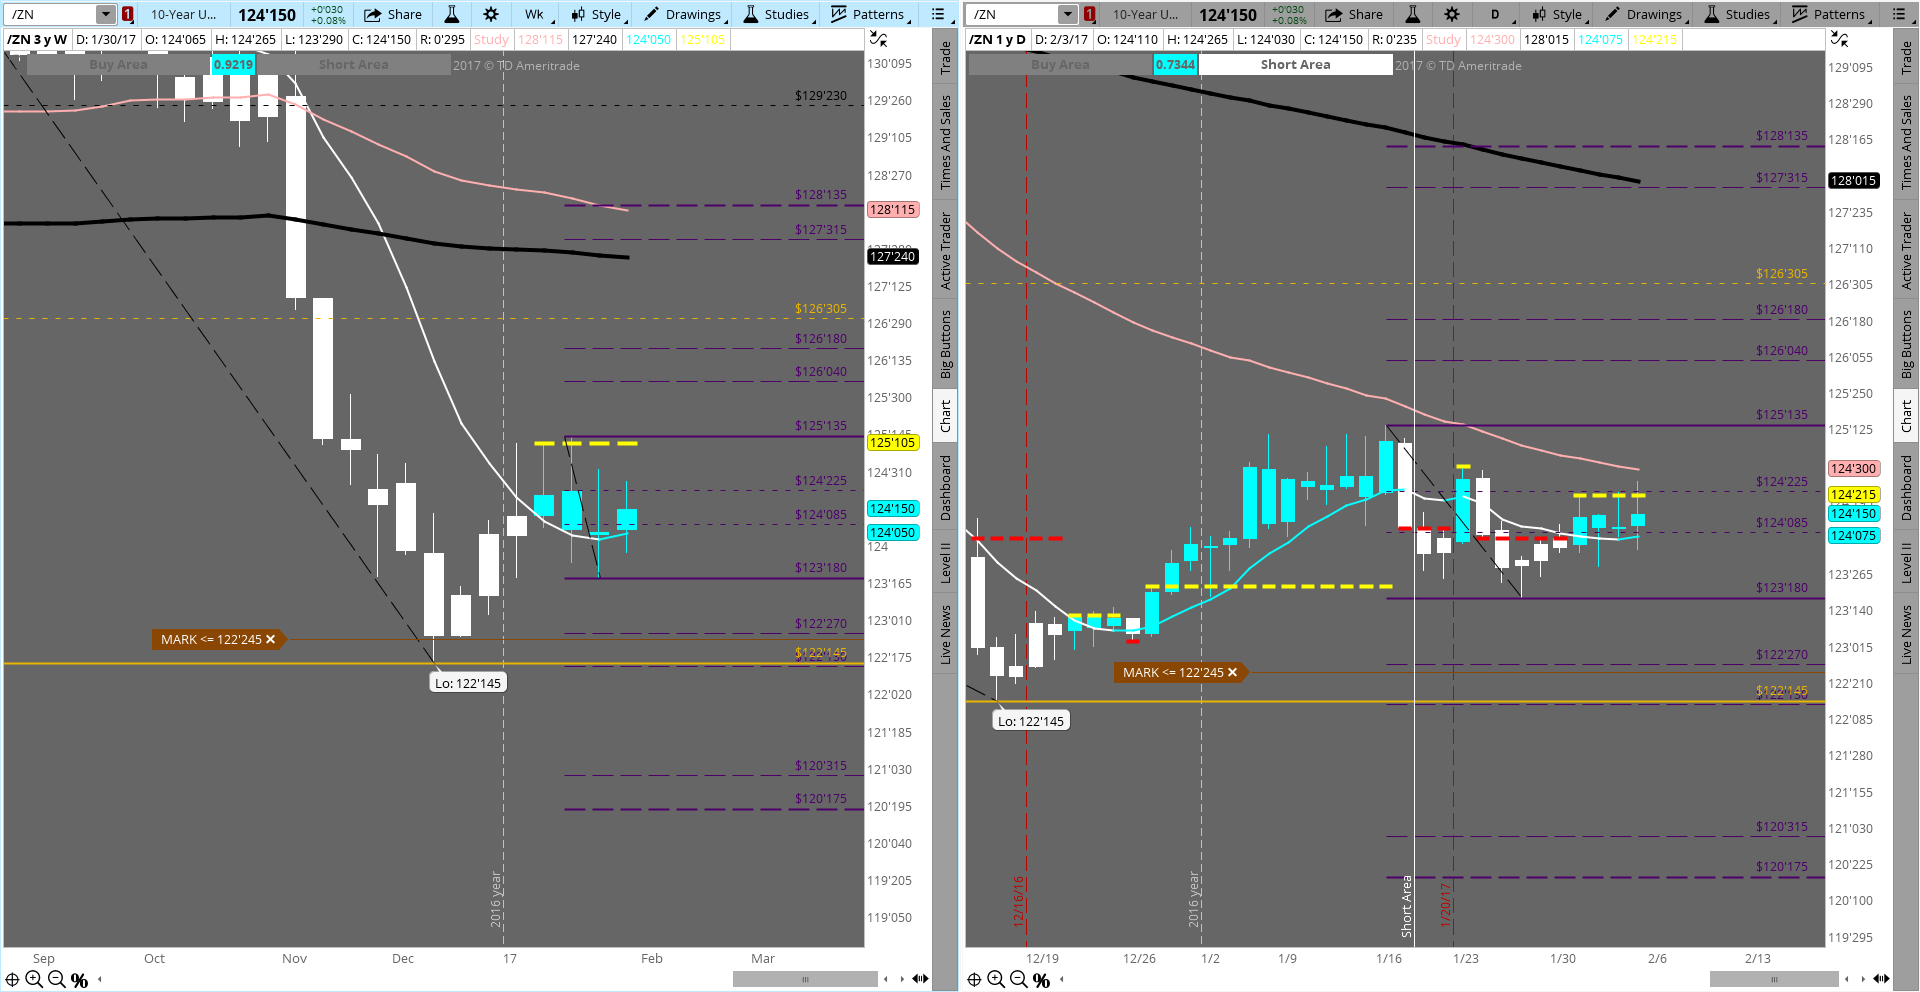 $ZN_F struggling to hold 124.225 after becoming a new long at 124.22. Targets 124.3 & 125.135. Bears need to retake and HOLD 124 first.  Weekly struggling too after becoming a new long at 125.11; but long term indicators are still ALL bearish and why the struggles at this level.